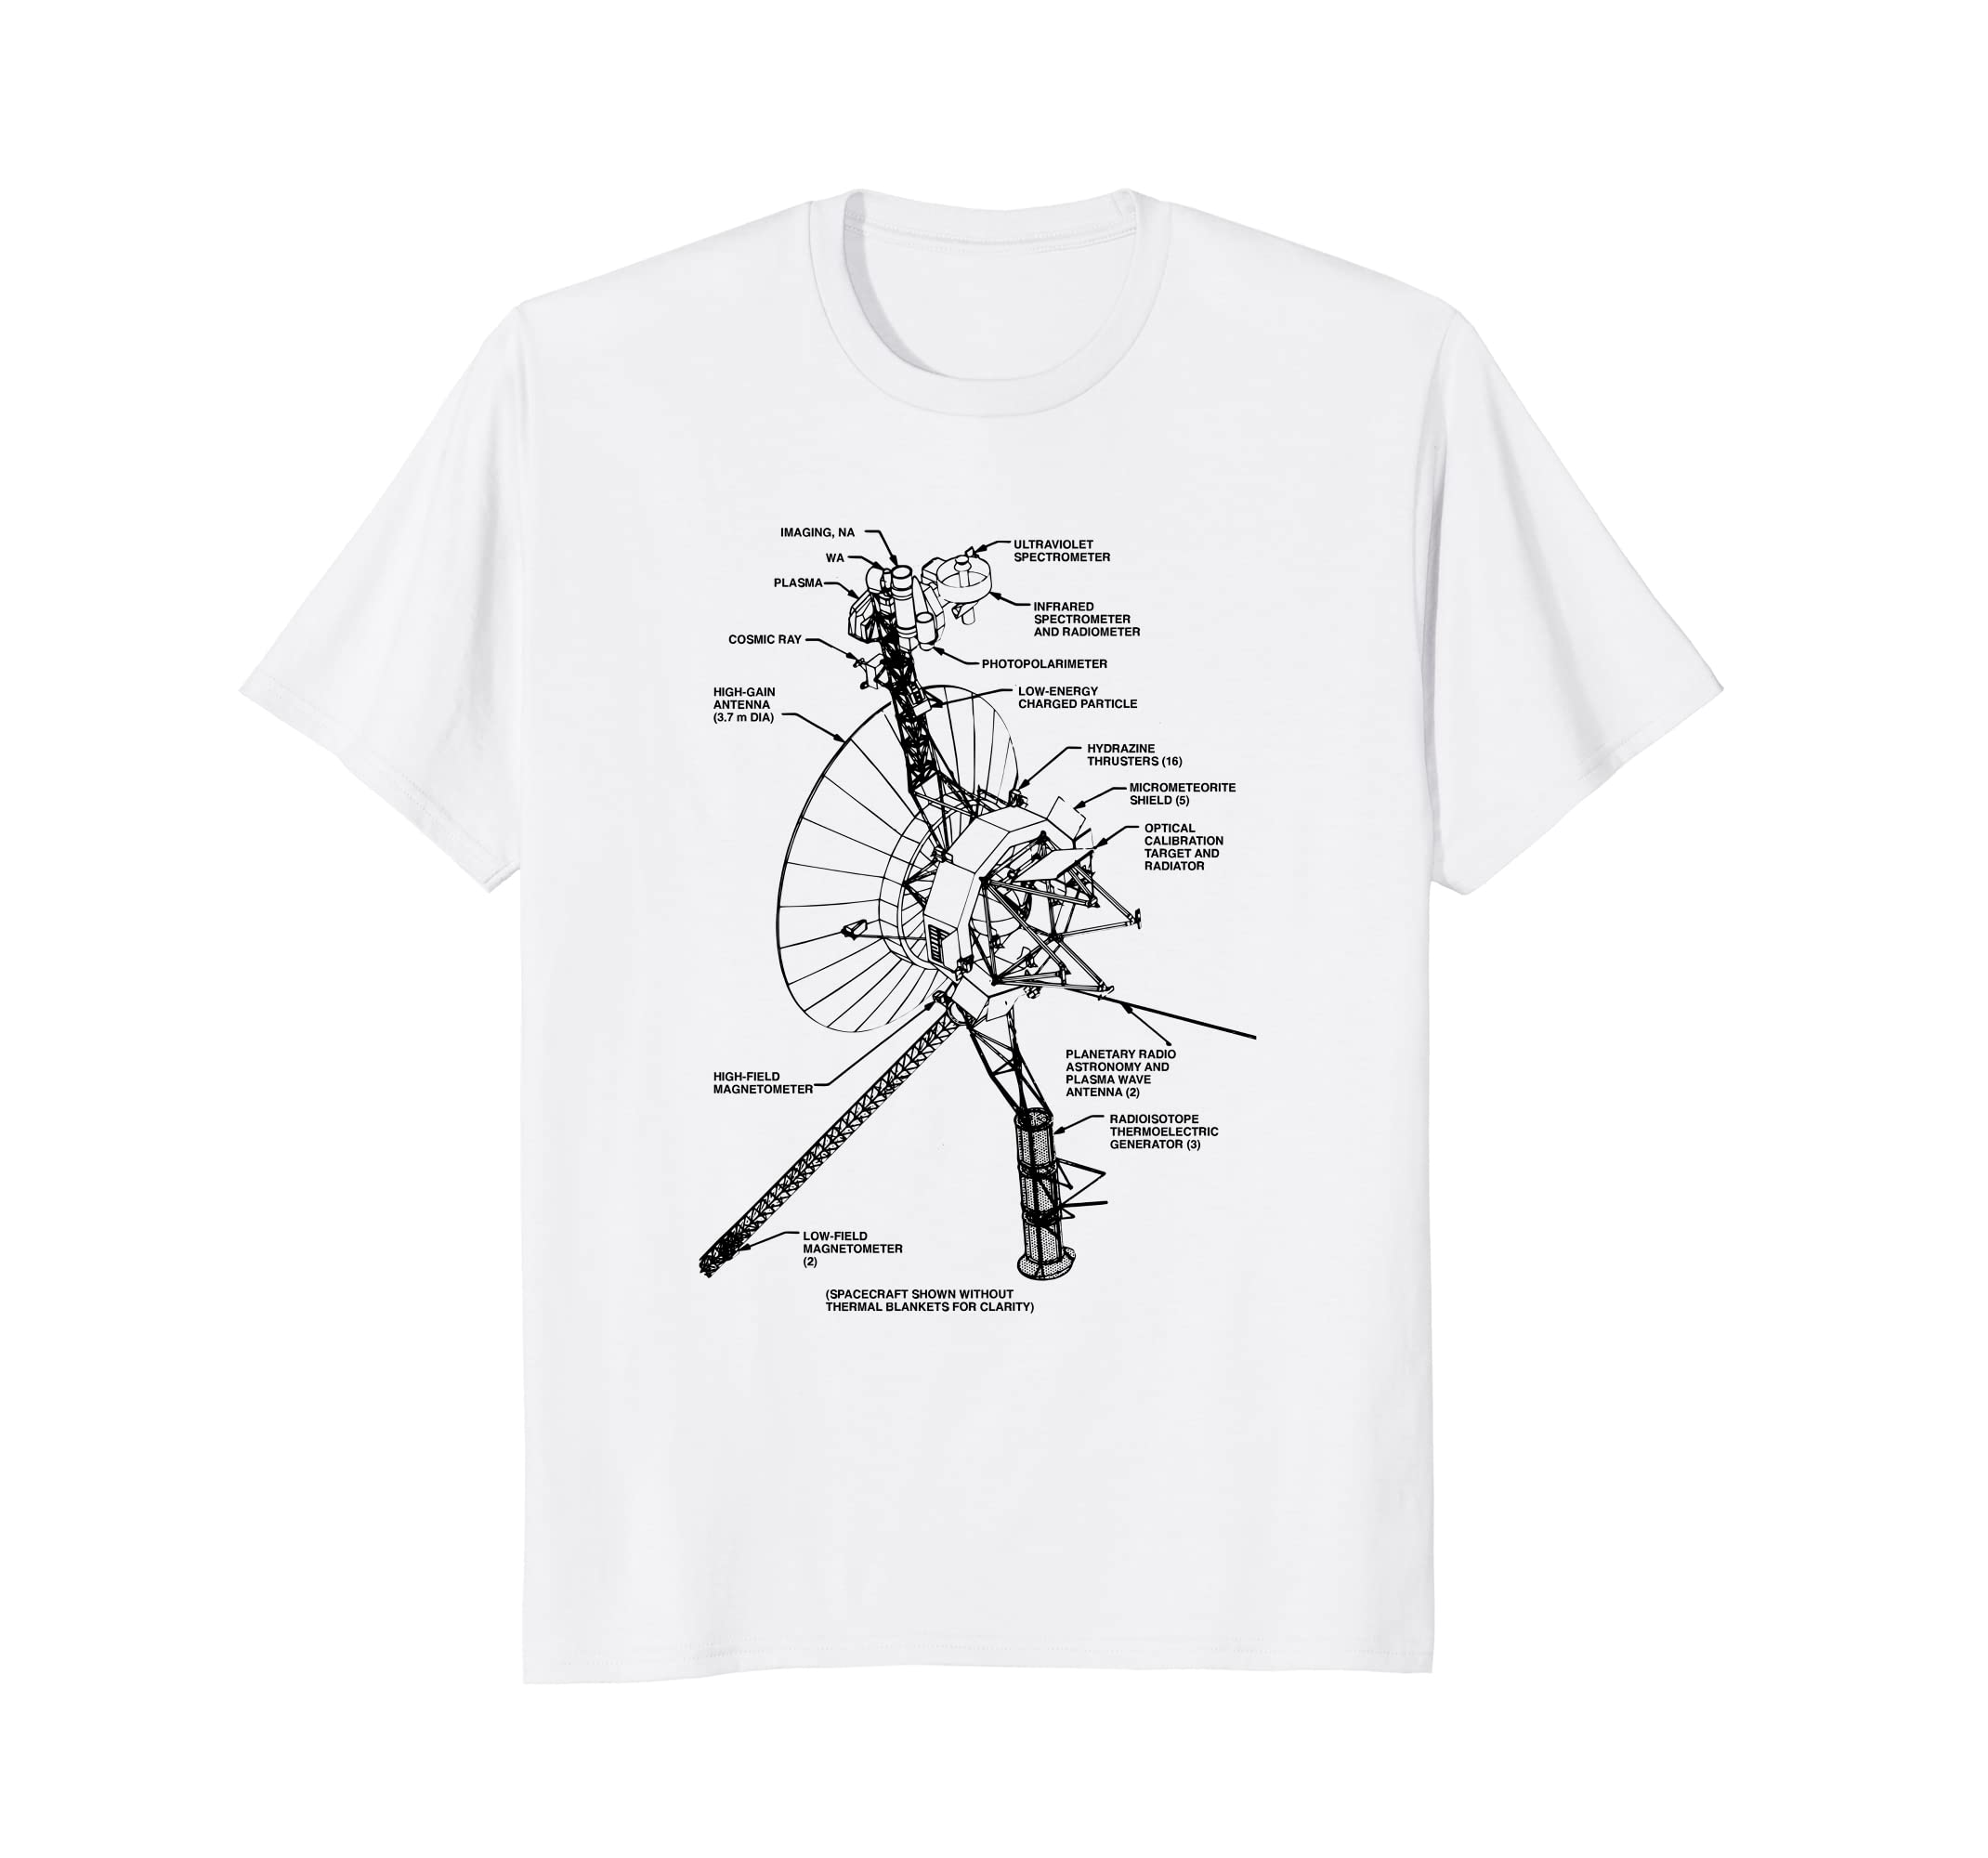 1ac8b13a21e960 Amazon.com: Voyager 1 T Shirt - Message T-Shirt Science Gift: Clothing